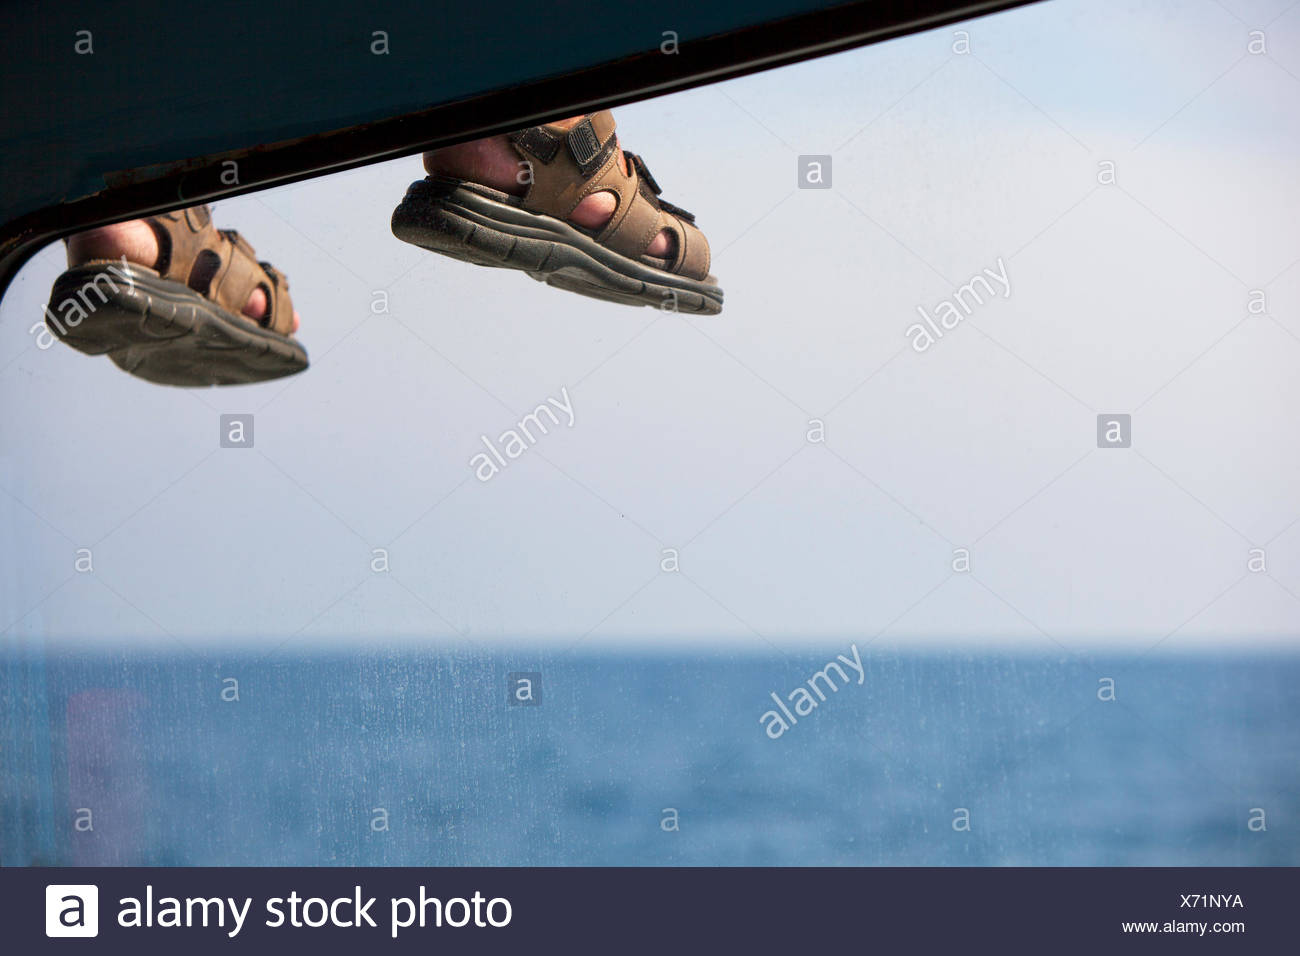 Thailand, Phuket, Thaimaa, Feet of person sitting on roof of vehicle - Stock Image